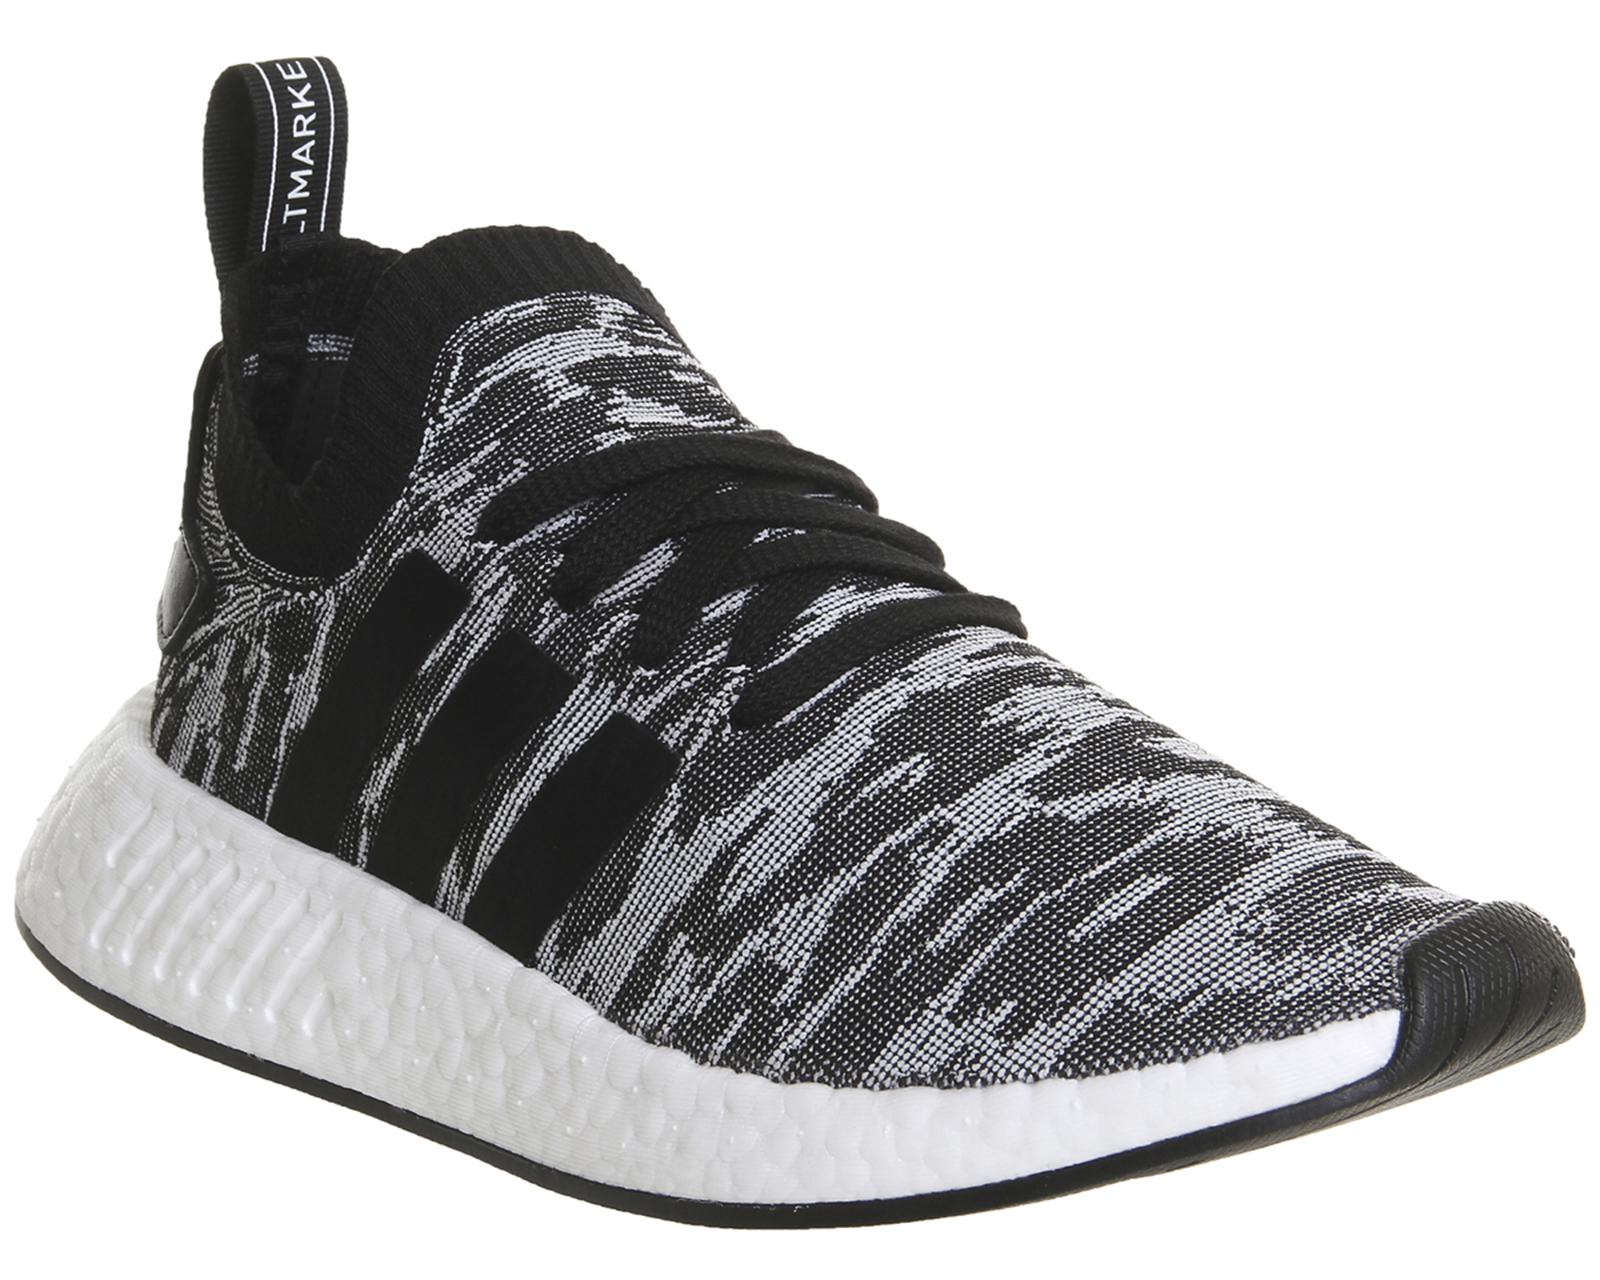 18d859715d550 Sentinel Adidas Nmd R2 Pk BLACK WHITE RED Trainers Shoes